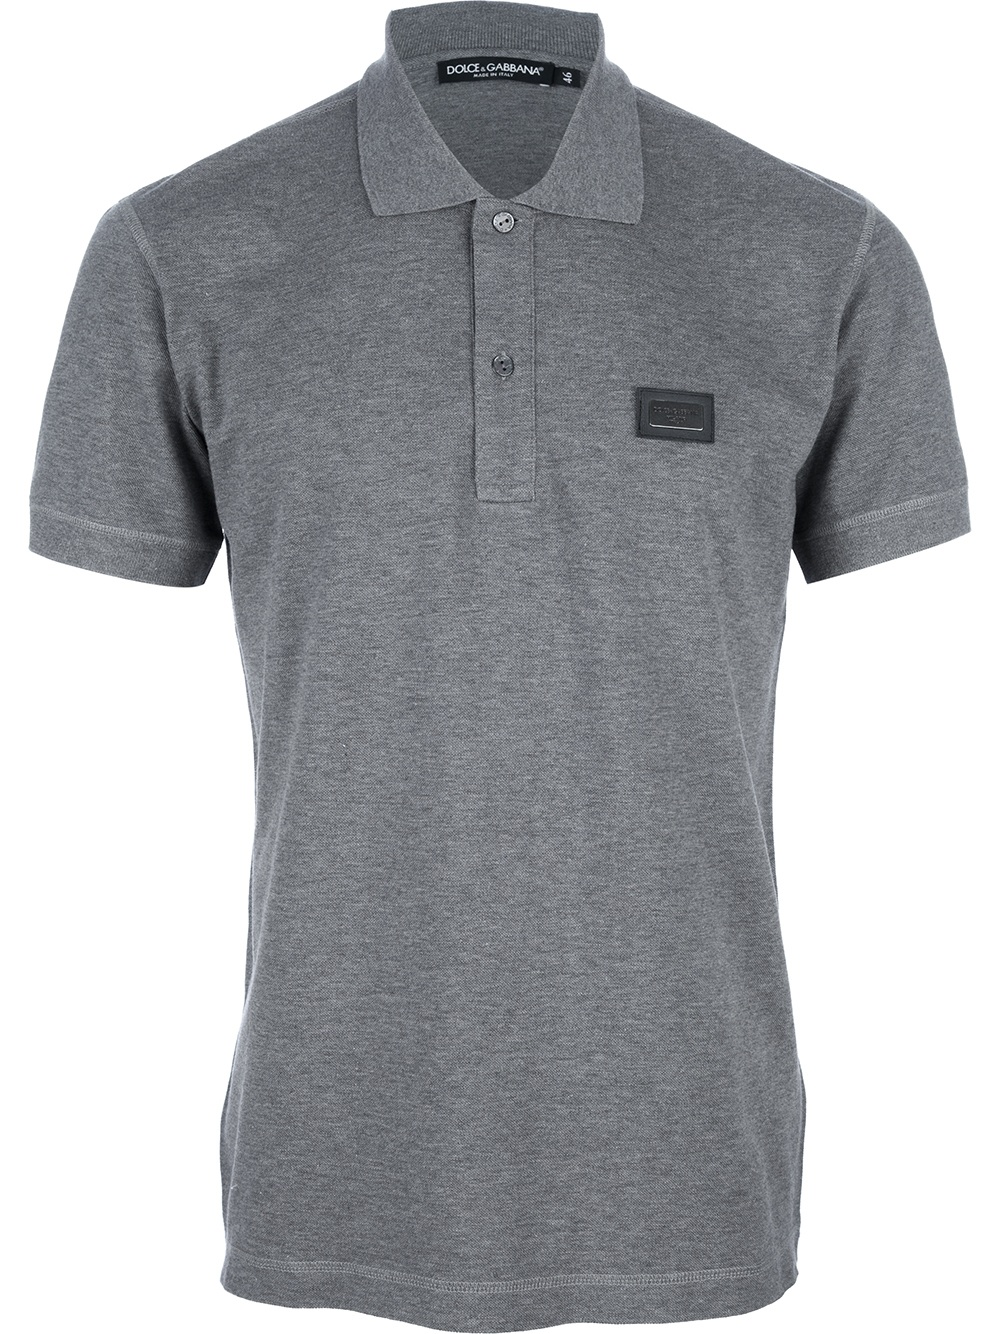 dolce gabbana polo shirt in gray for men grey lyst